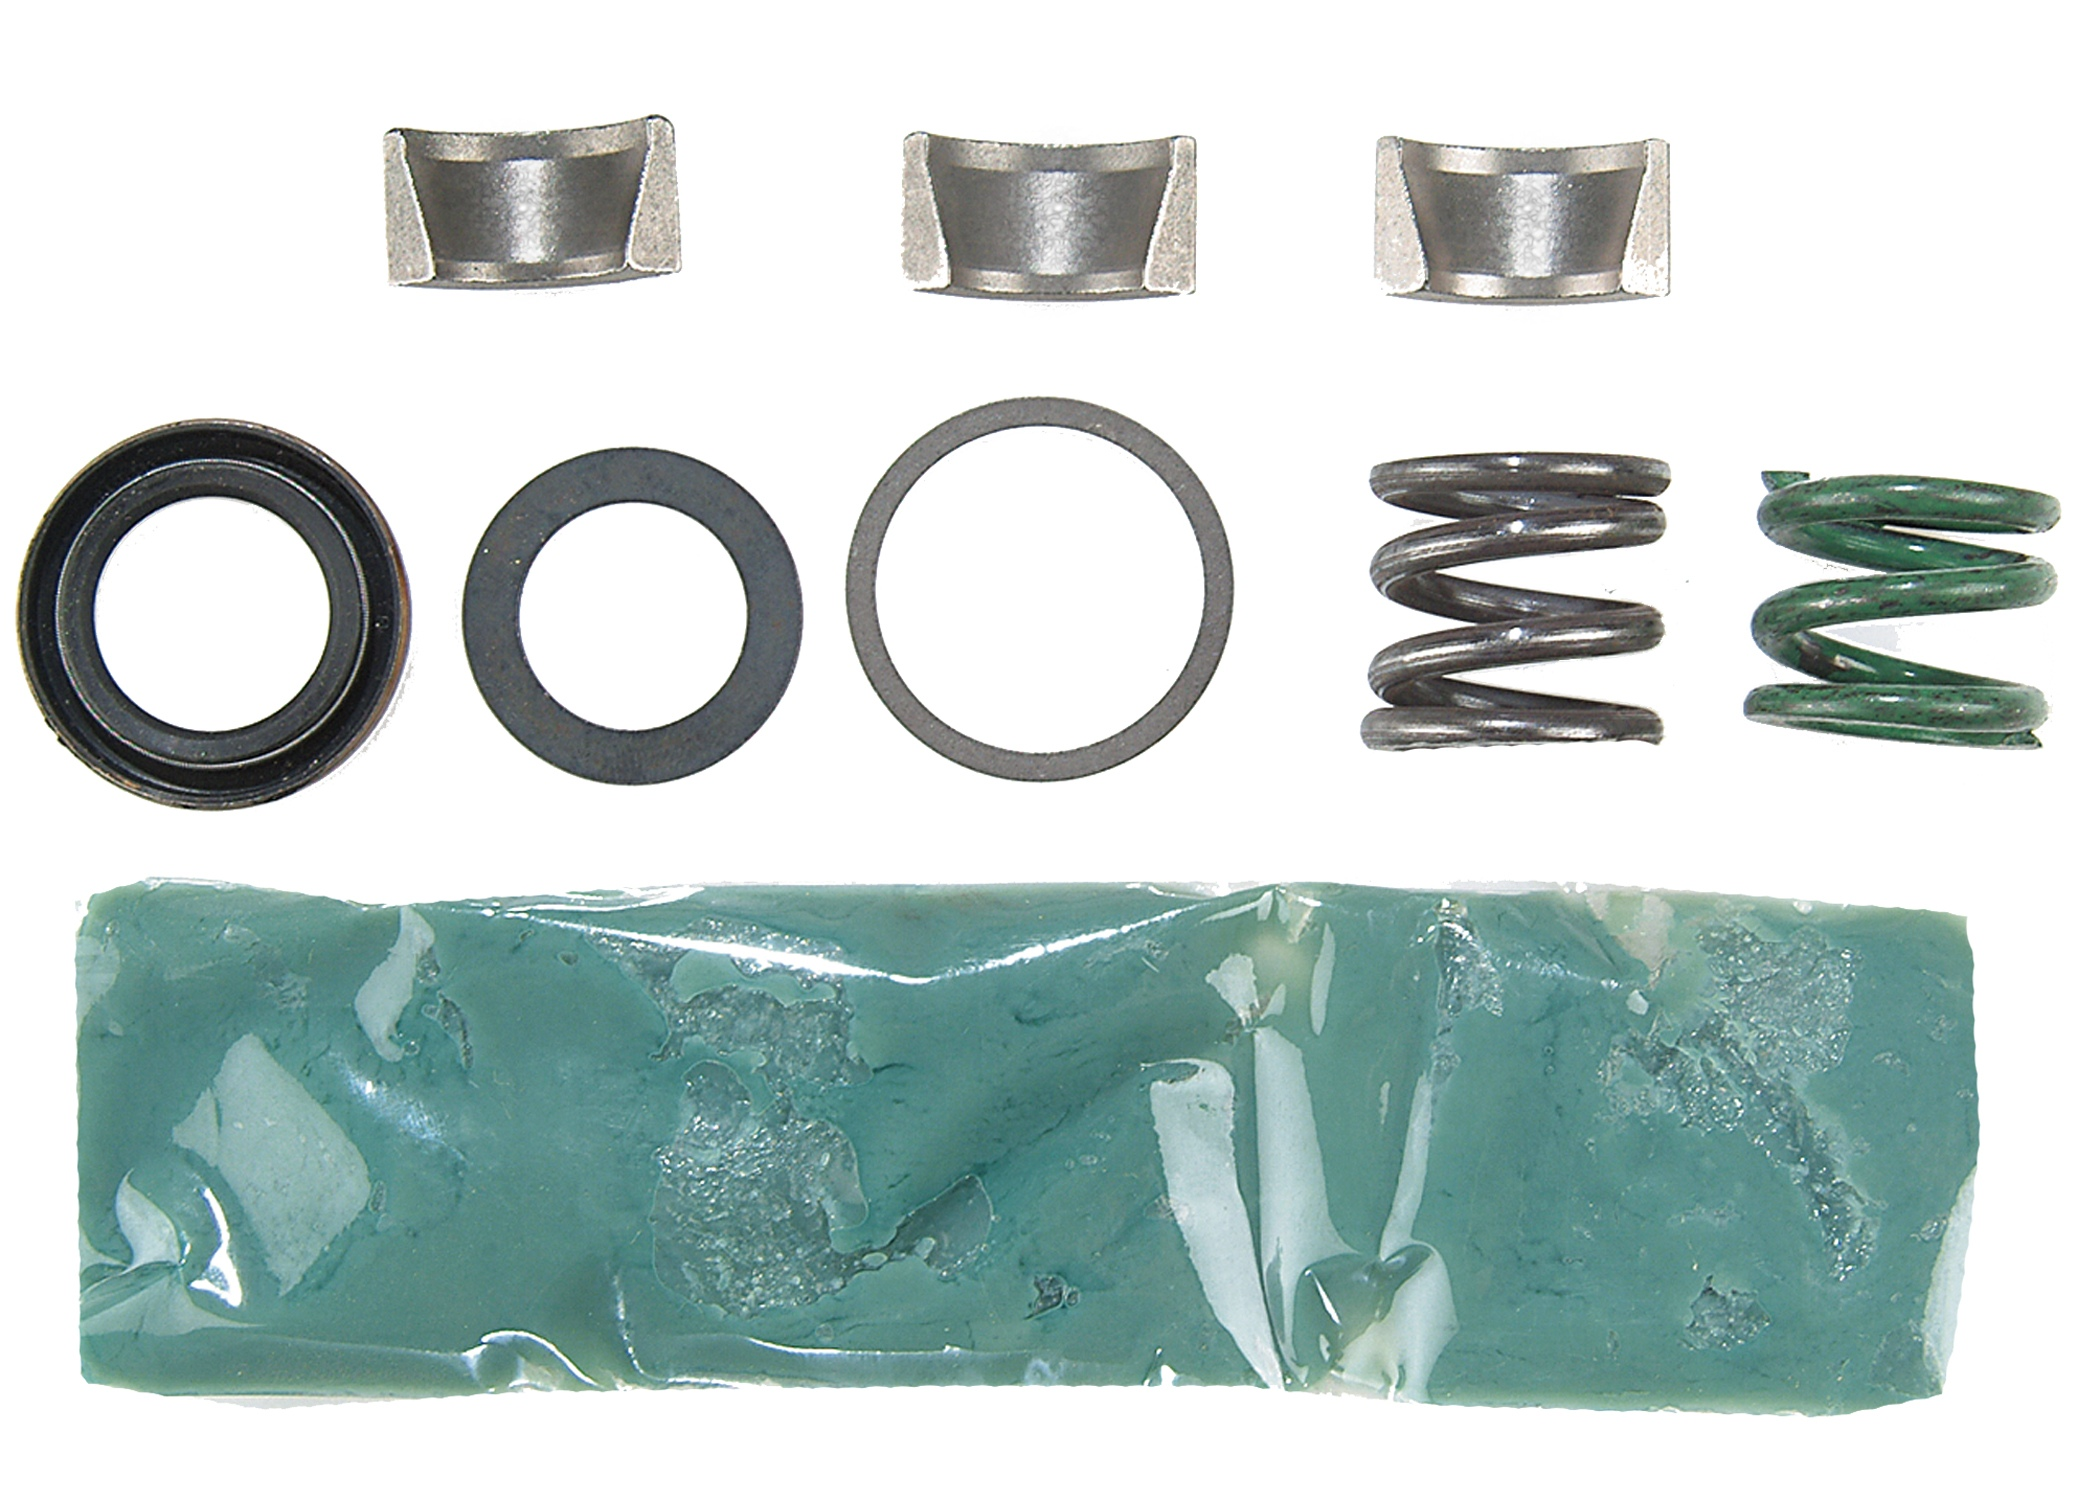 ACDELCO PROFESSIONAL - Propshaft Joint Ball Seat Kit - DCC 45U0752